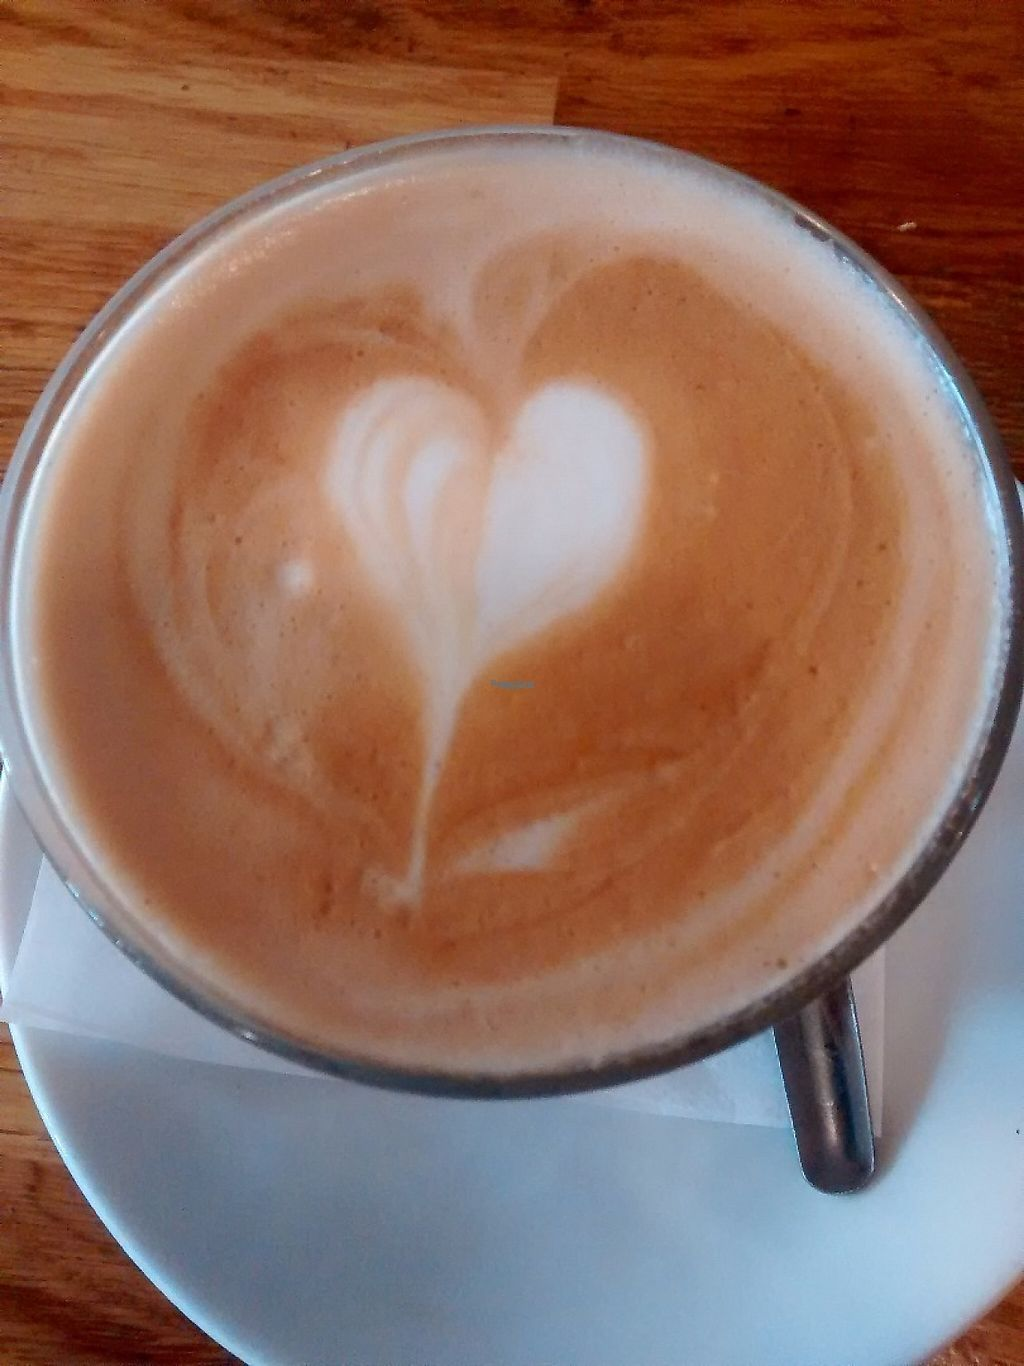 """Photo of Rose & Grant's Deli Cafe  by <a href=""""/members/profile/TrixieFirecracker"""">TrixieFirecracker</a> <br/>Latte <br/> November 20, 2016  - <a href='/contact/abuse/image/78929/192668'>Report</a>"""